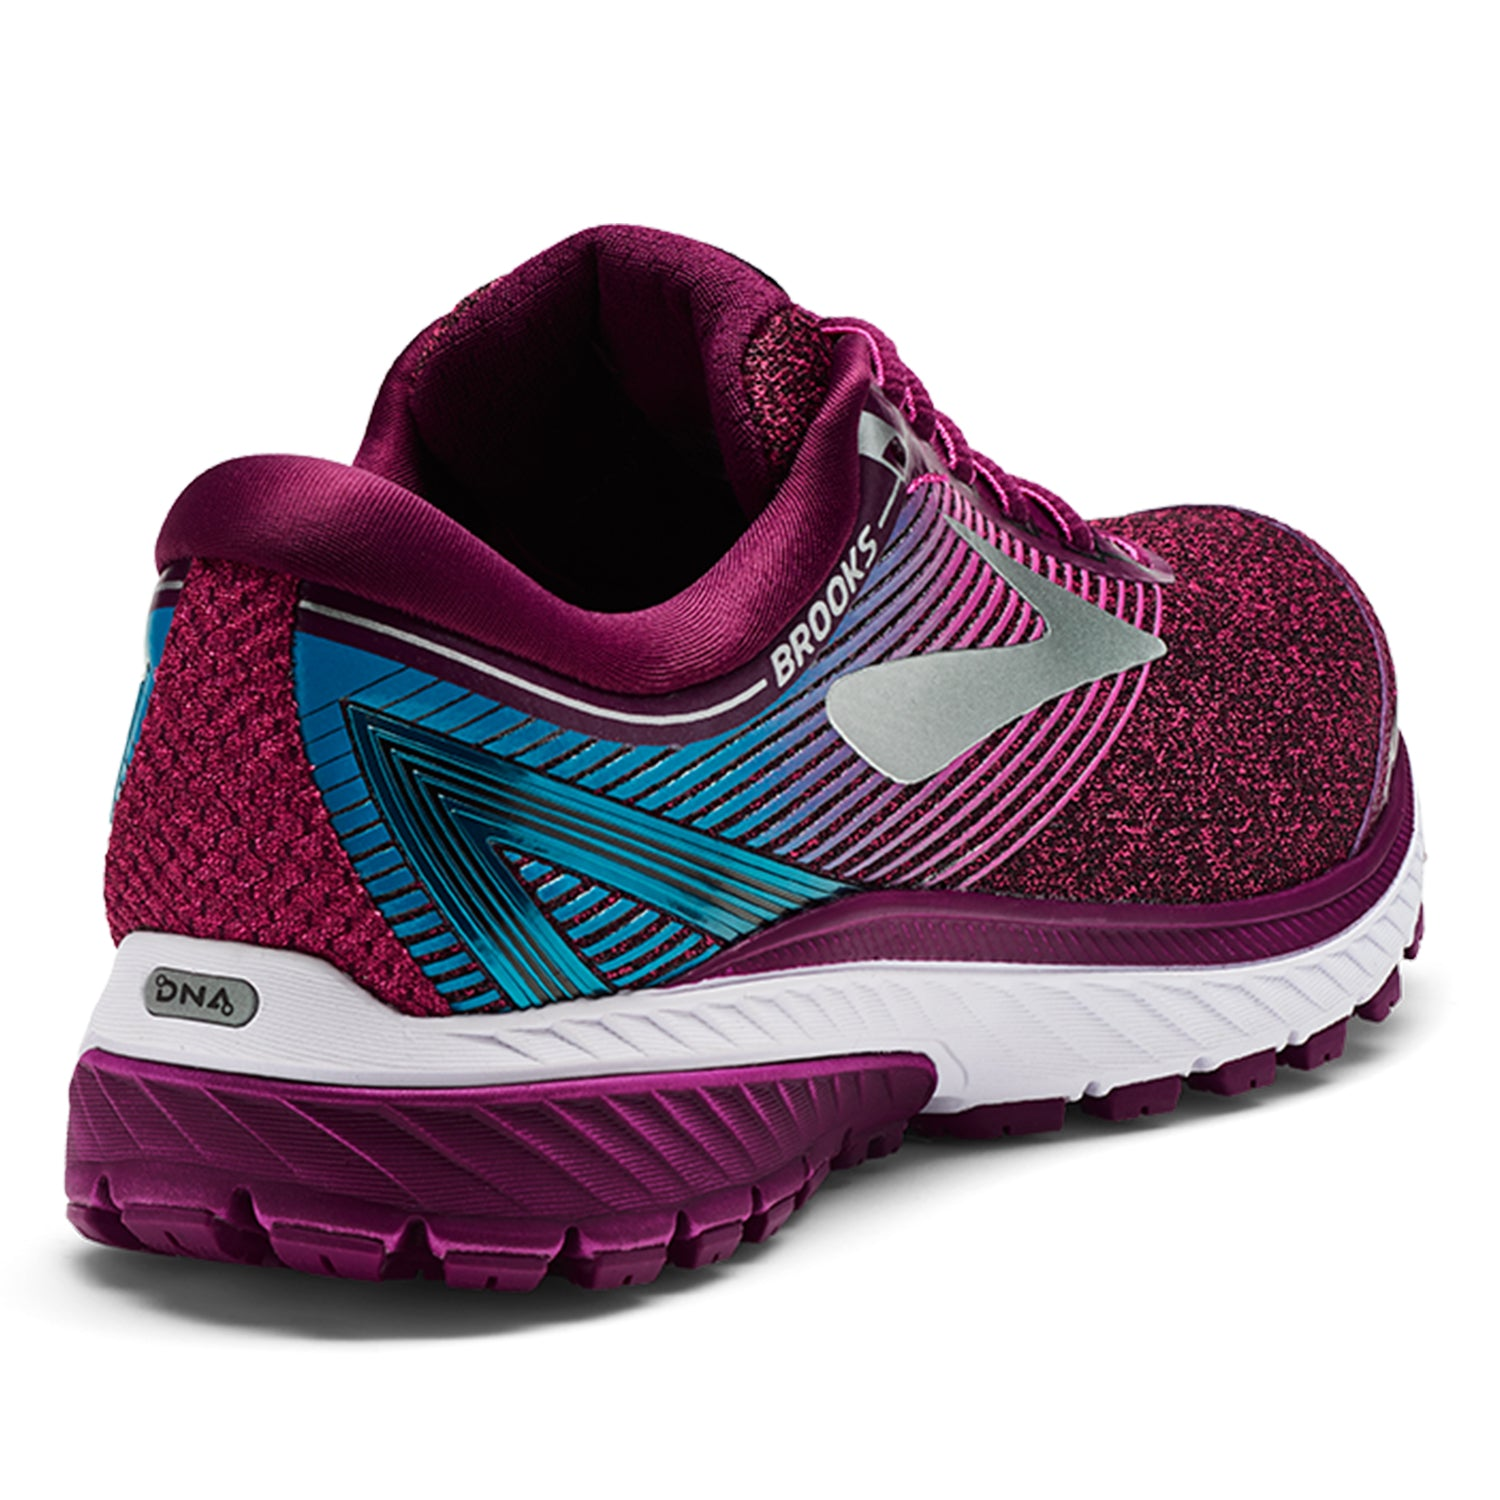 4bdefb62a3788 ... Brooks Ghost 10 Womens